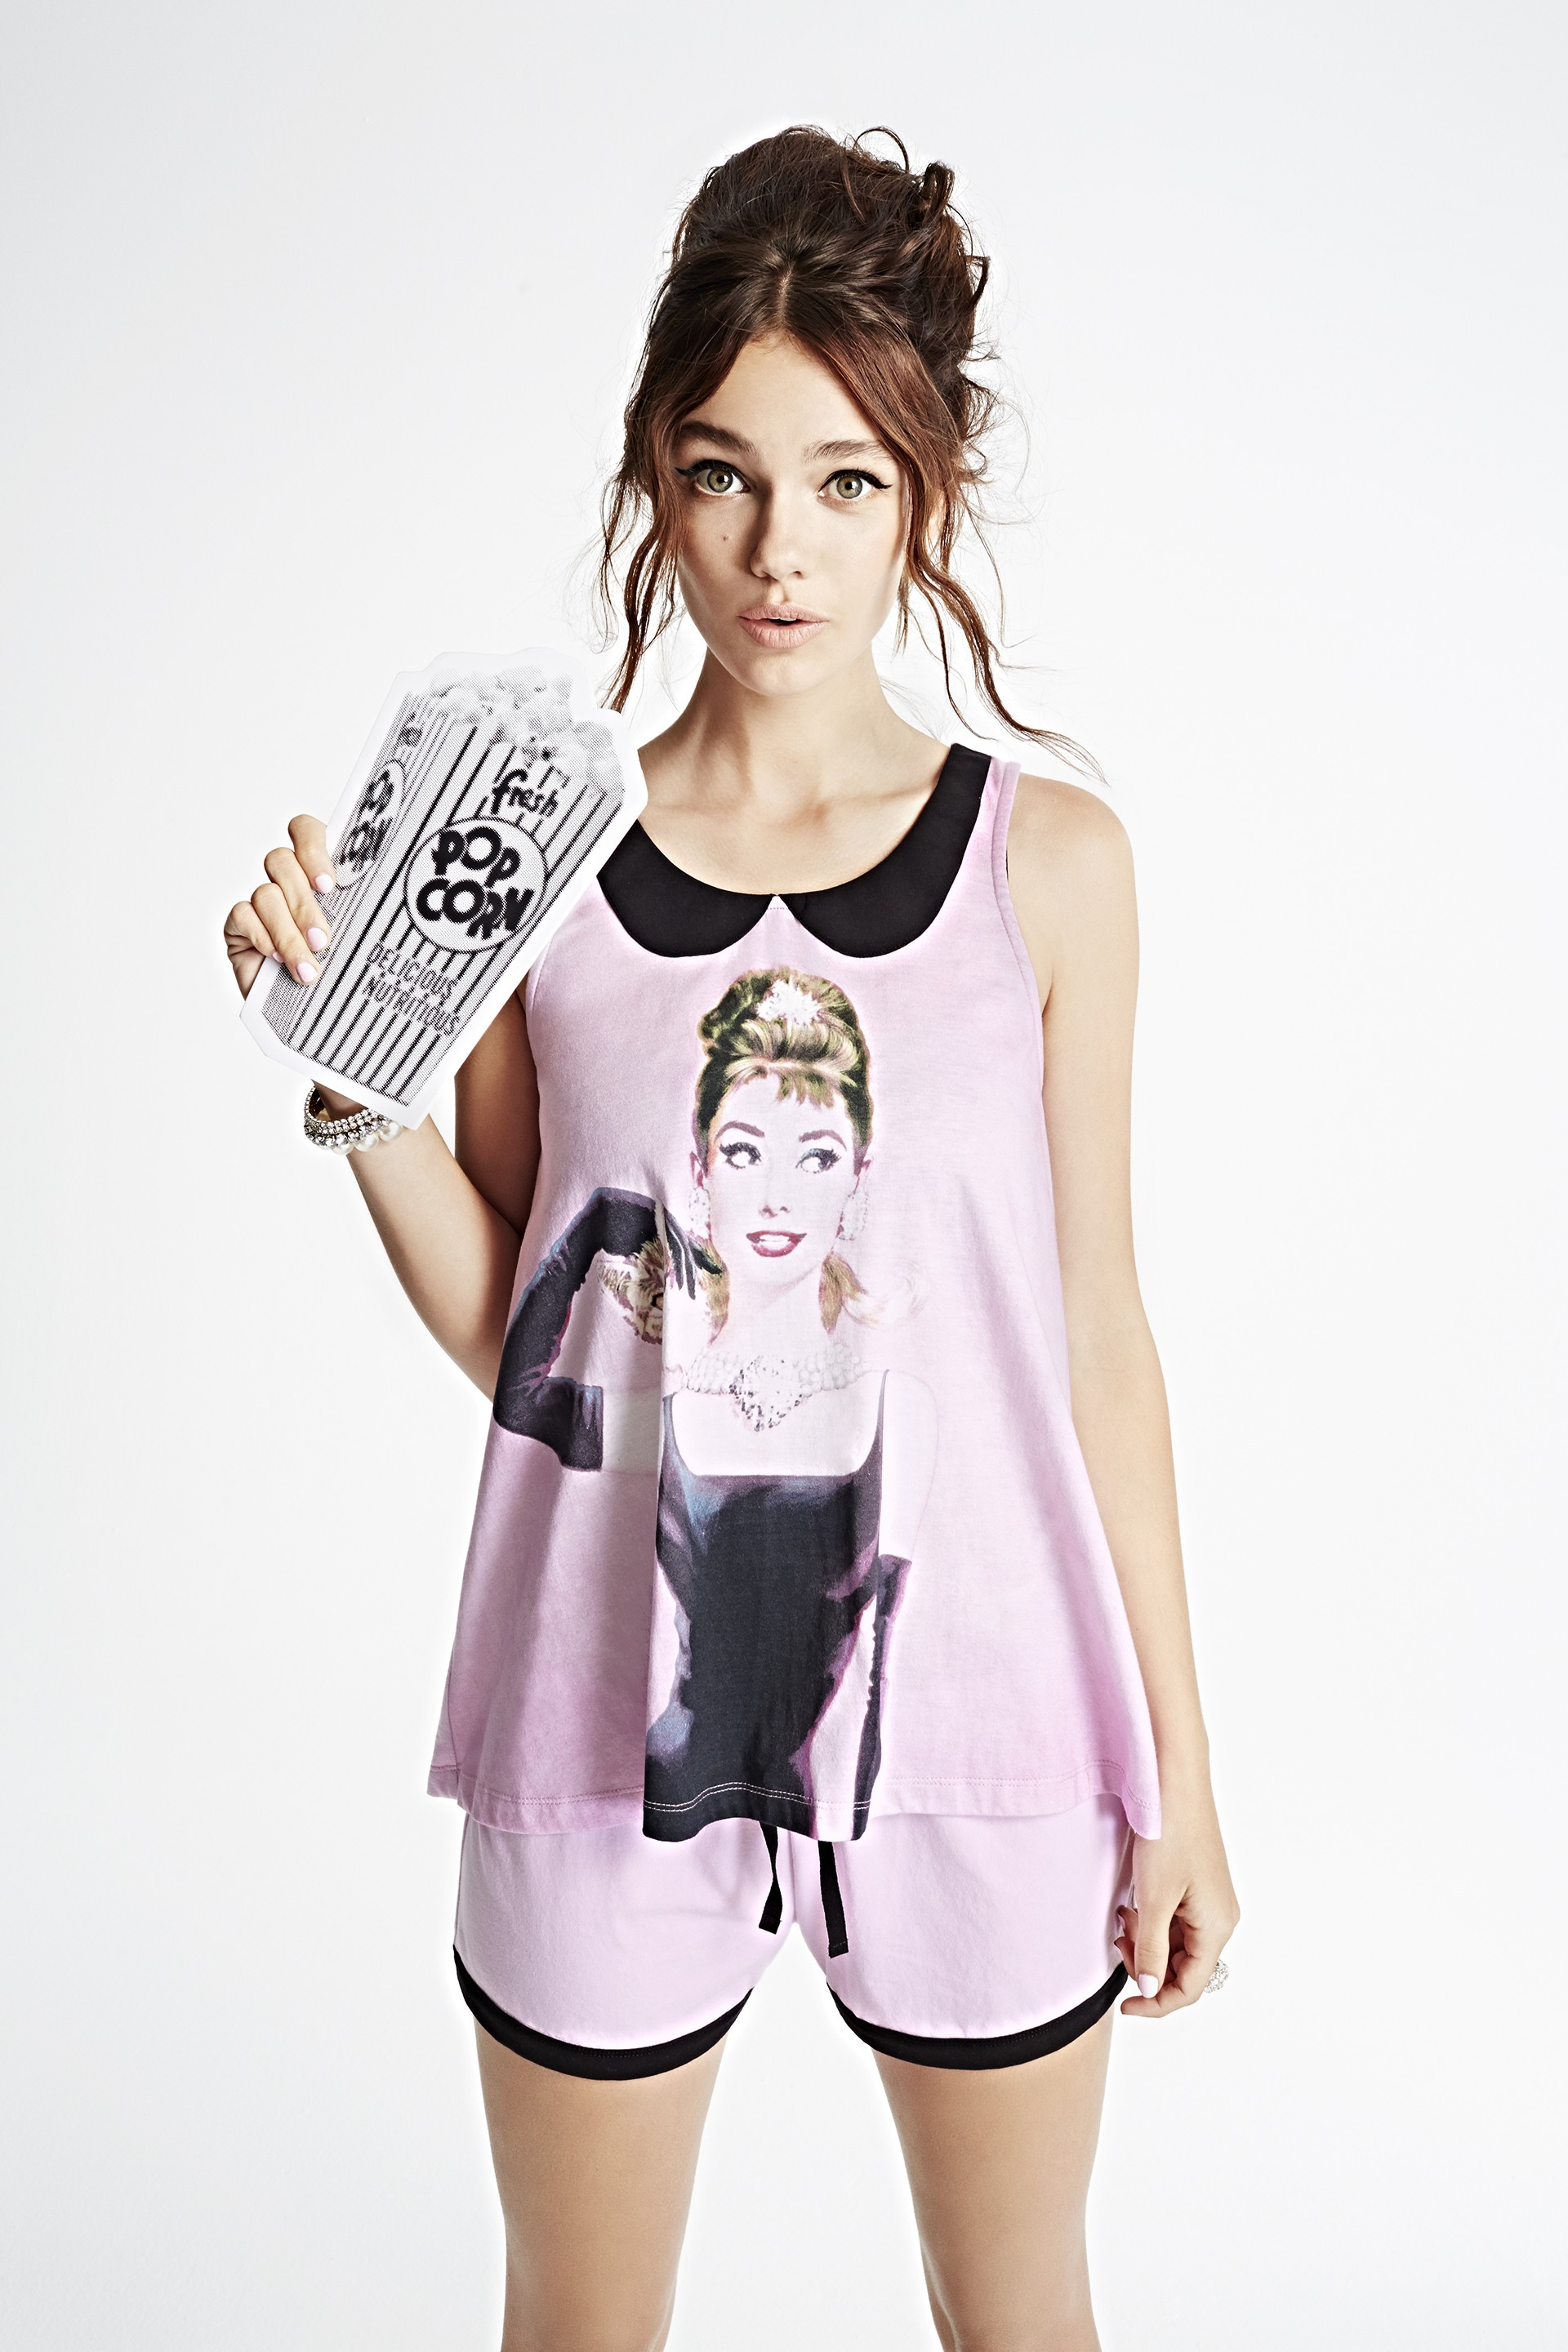 peter alexander, audrey hepburn, breakfast at tiffanys, peter alexander nz, fashion, sleepwear, beauty blog nz, fashion blog nz, style blog nz, beauty media nz, fashion media nz, angie fredatovich, gurlinterrupted, fashion, beauty